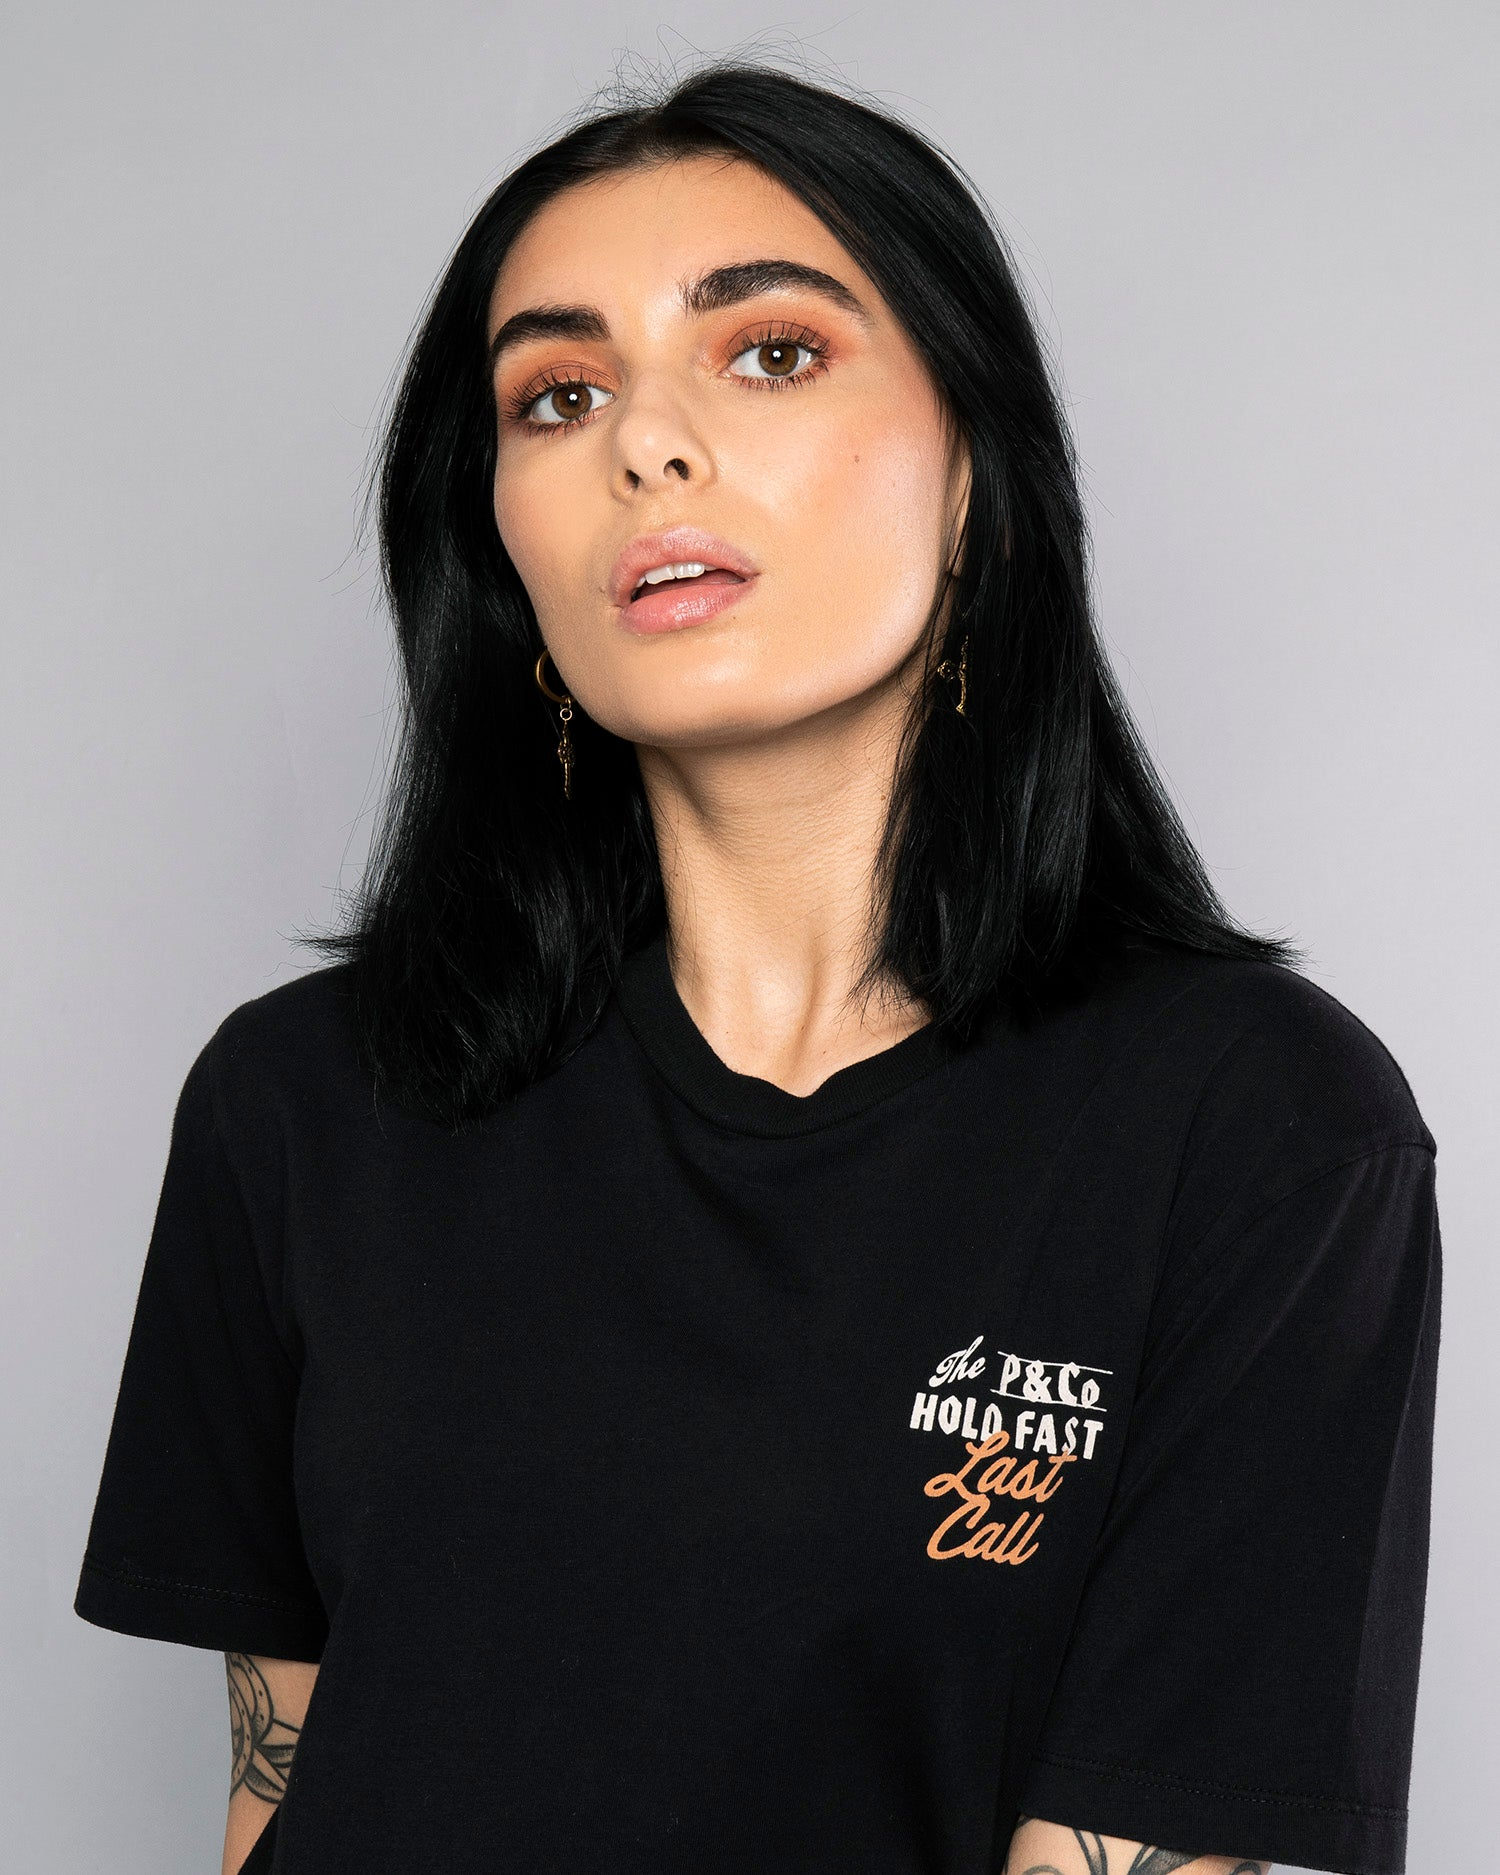 Last Call Womens Graphical Black Tee